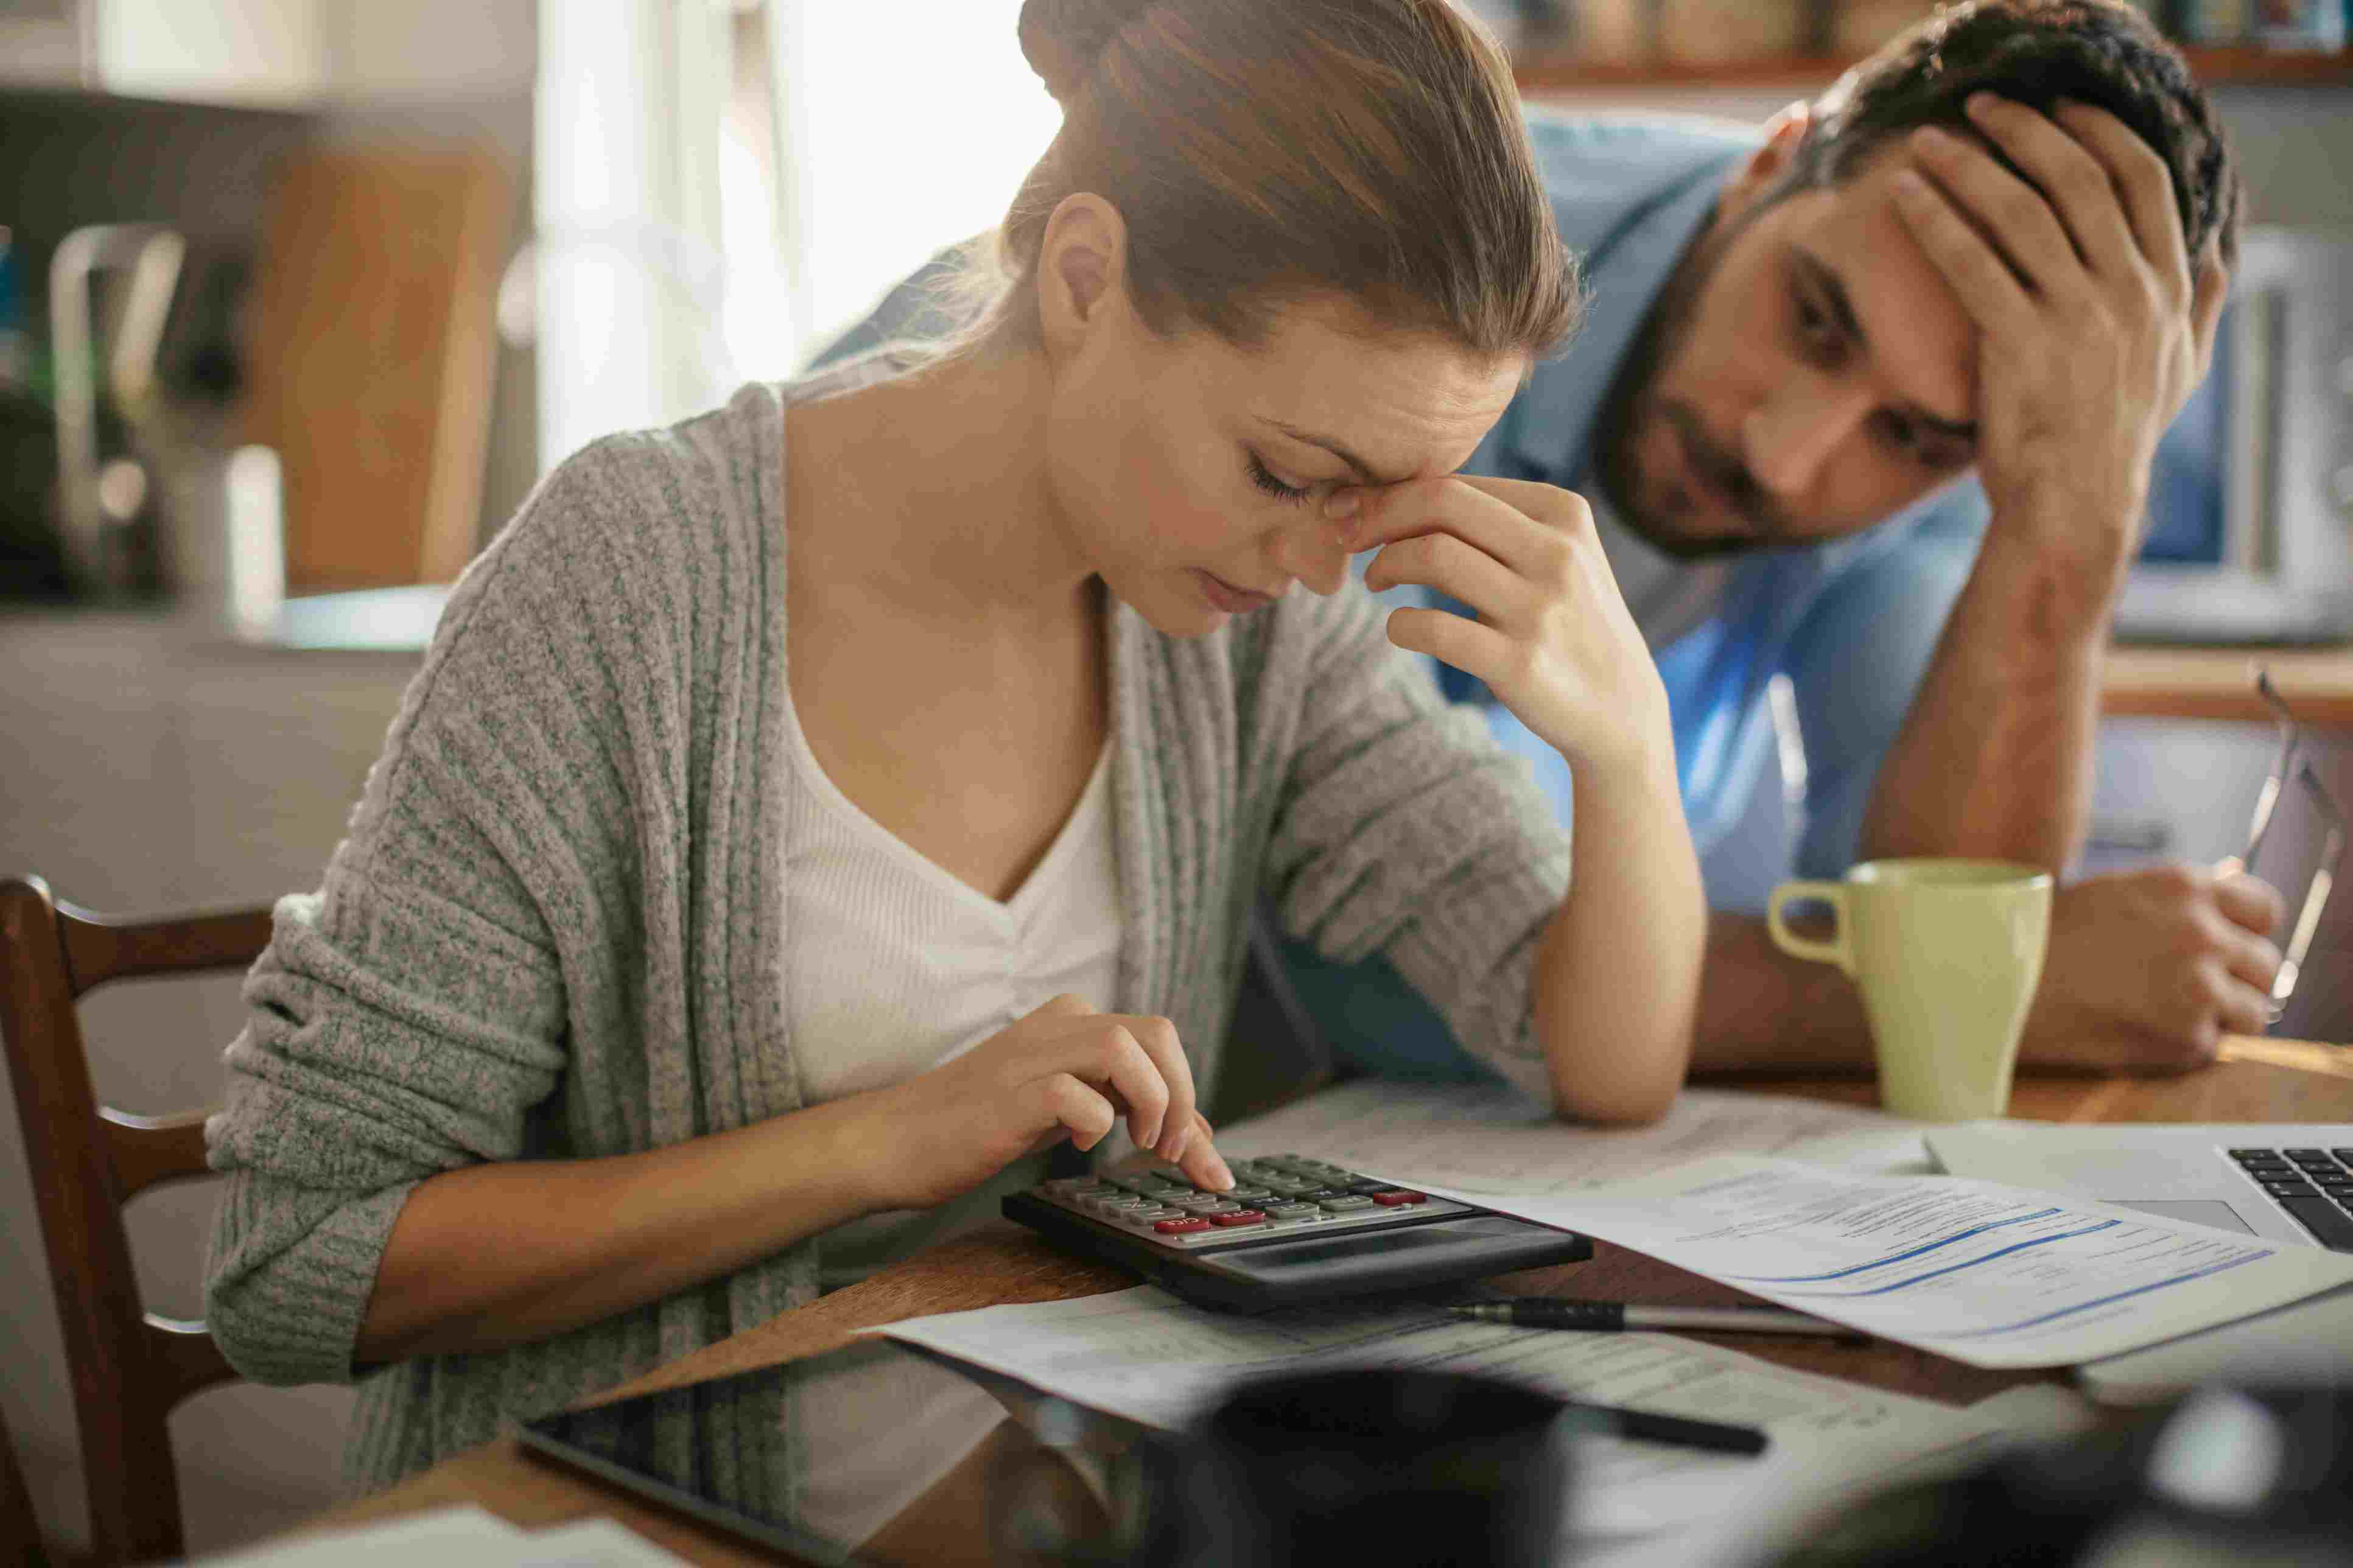 Couple reviewing bills and looking distressed